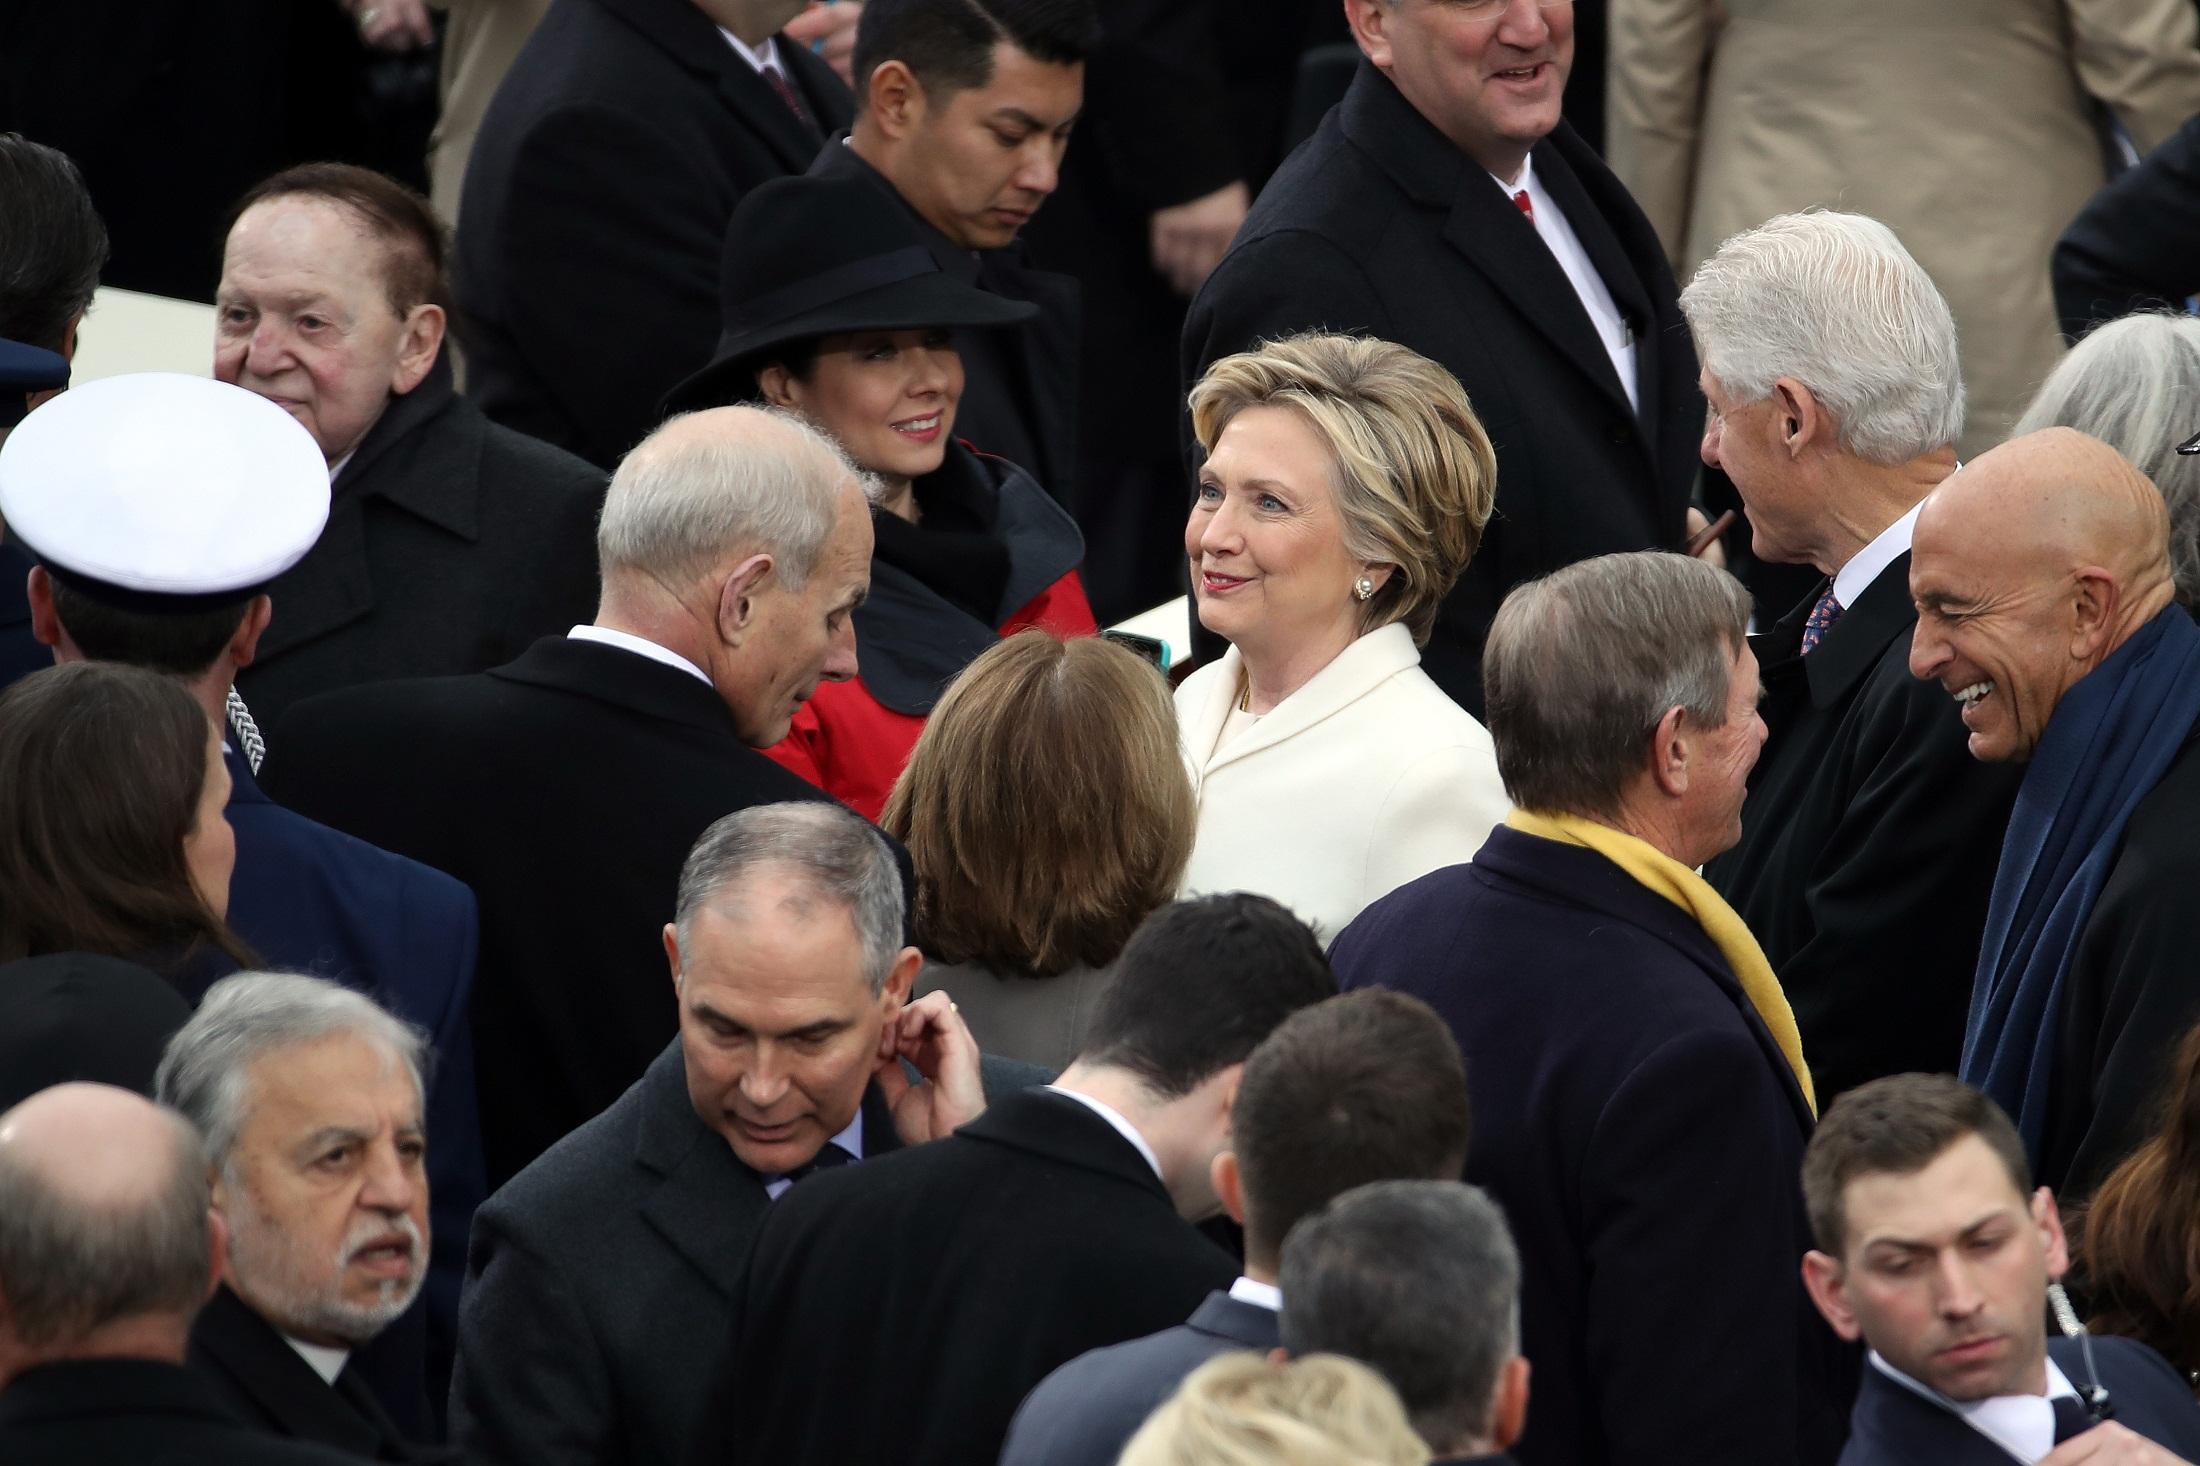 WASHINGTON, DC - JANUARY 20: Former Democratic presidential nominee Hillary Clinton (C) and former President Bill Clinton (R) arrive on the West Front of the U.S. Capitol on January 20, 2017 in Washington, DC. In today's inauguration ceremony Donald J. Trump becomes the 45th president of the United States.   Drew Angerer/Getty Images/AFP